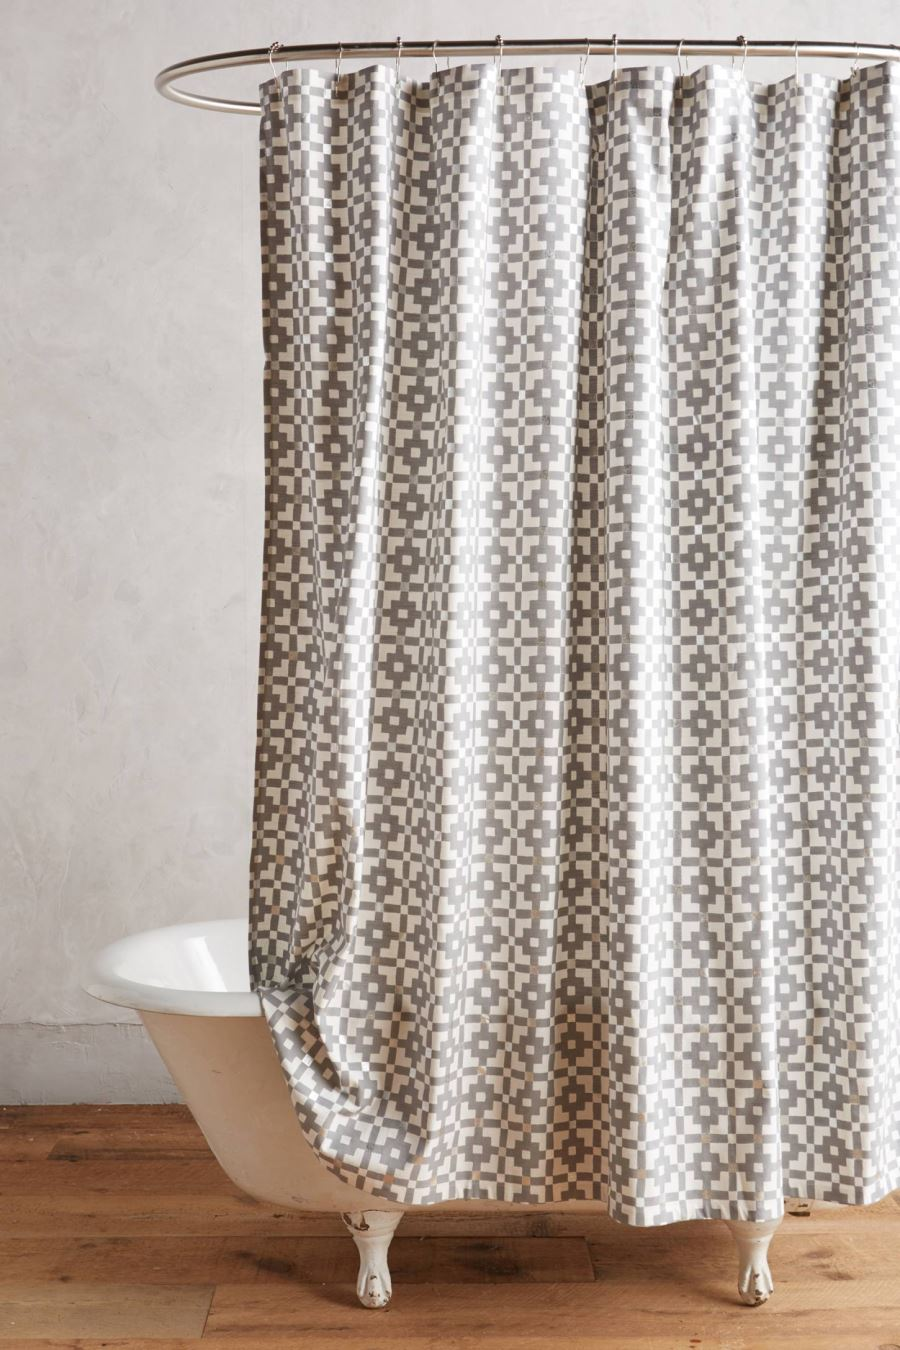 latest in shower curtain trends